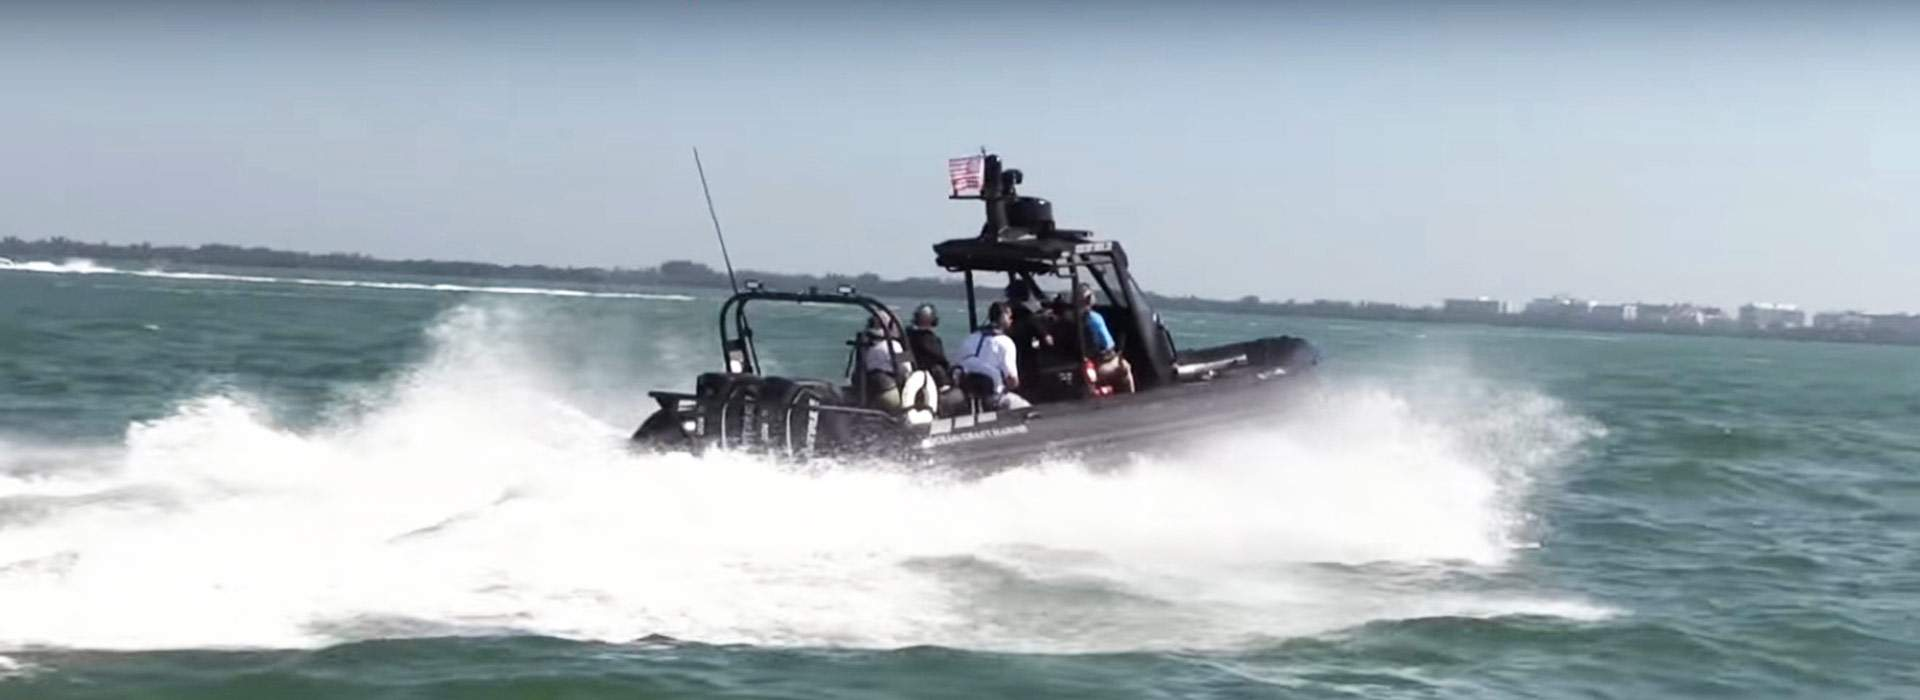 The new OCM 9.5 Meter High-Speed Vessel Interdiction RHIB at the Multi Agency Craft Conference 2016